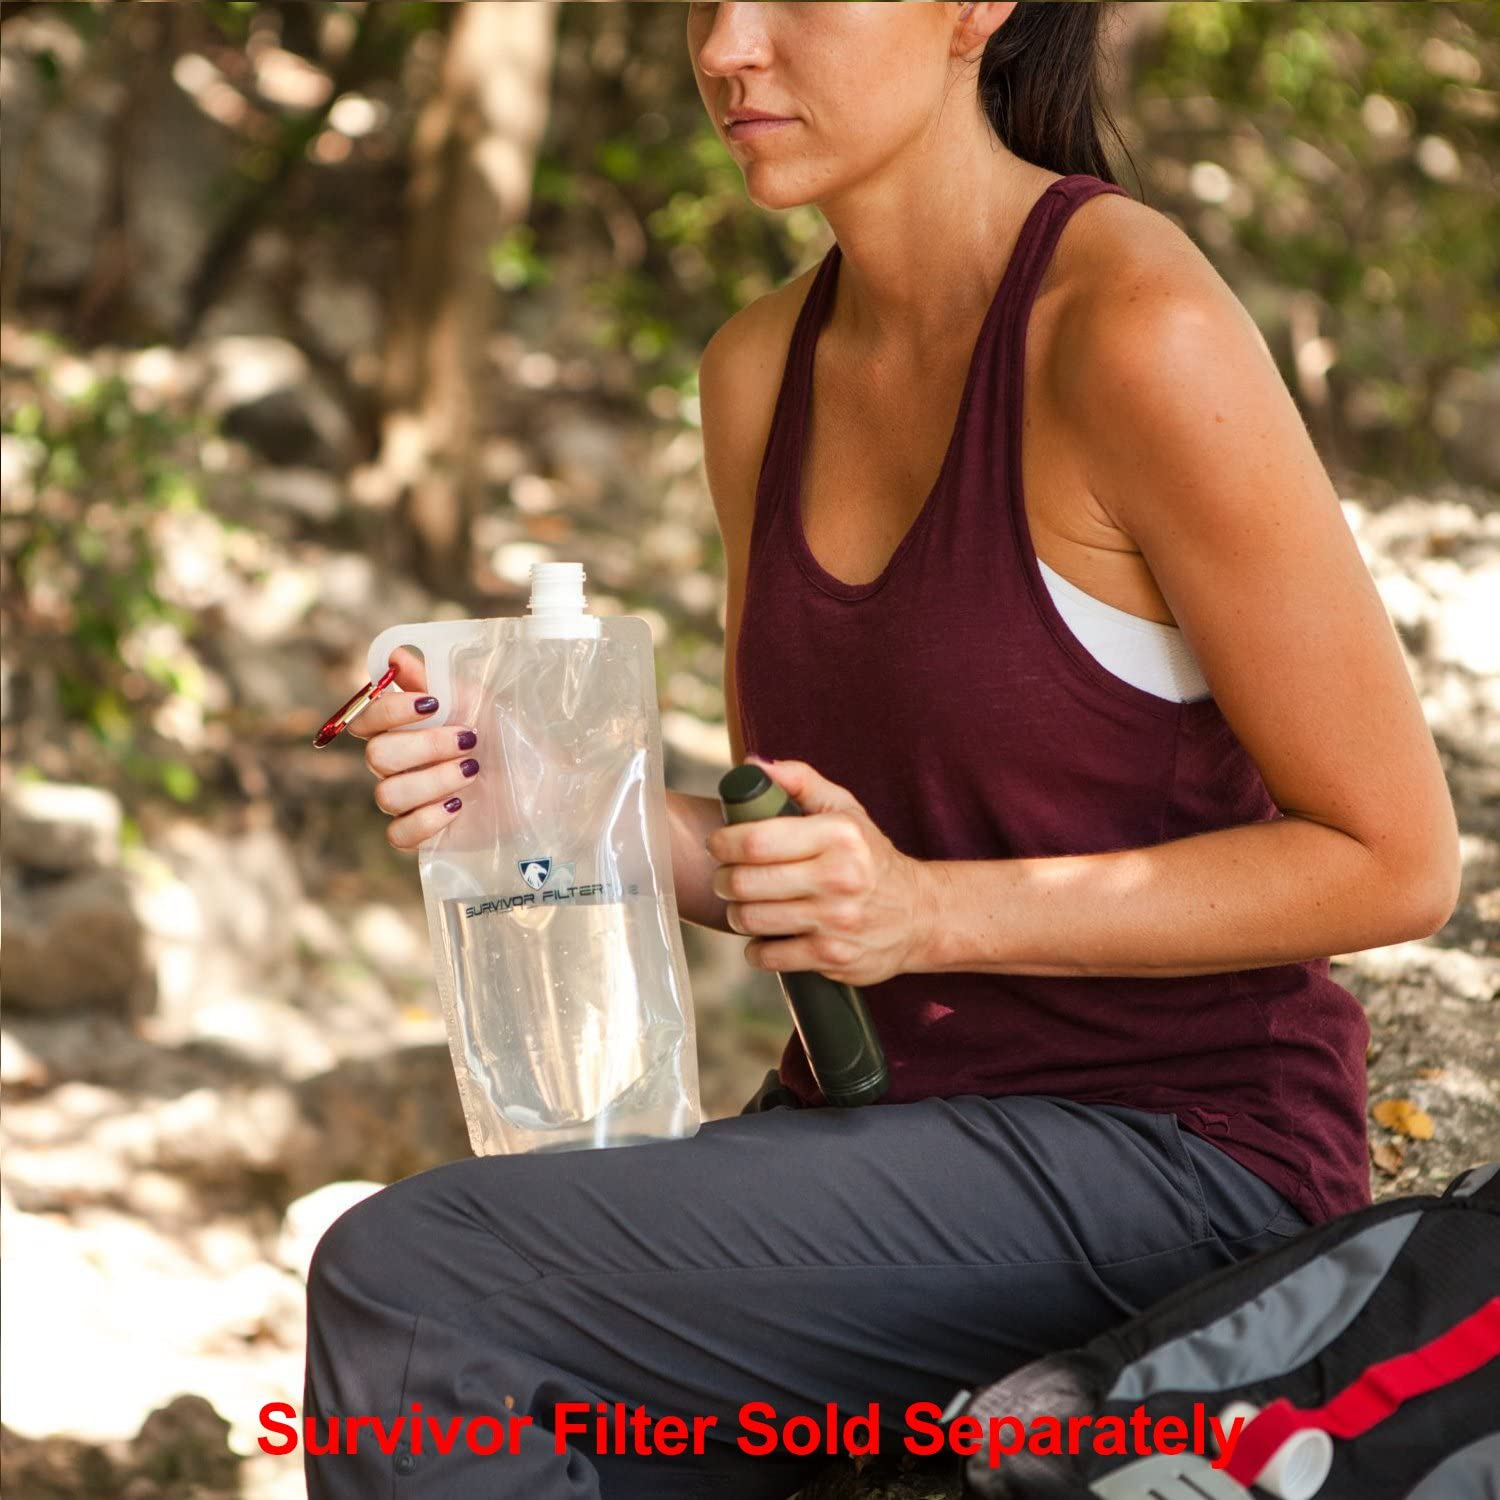 Survivor Filter Collapsible Canteens (33oz) 2 Pack (2L Total) - Durable Carabiners and Handles. Squeeze Water Through a Filter or Use as Water Bottles. Light and BPA Free. : Sports & Outdoors